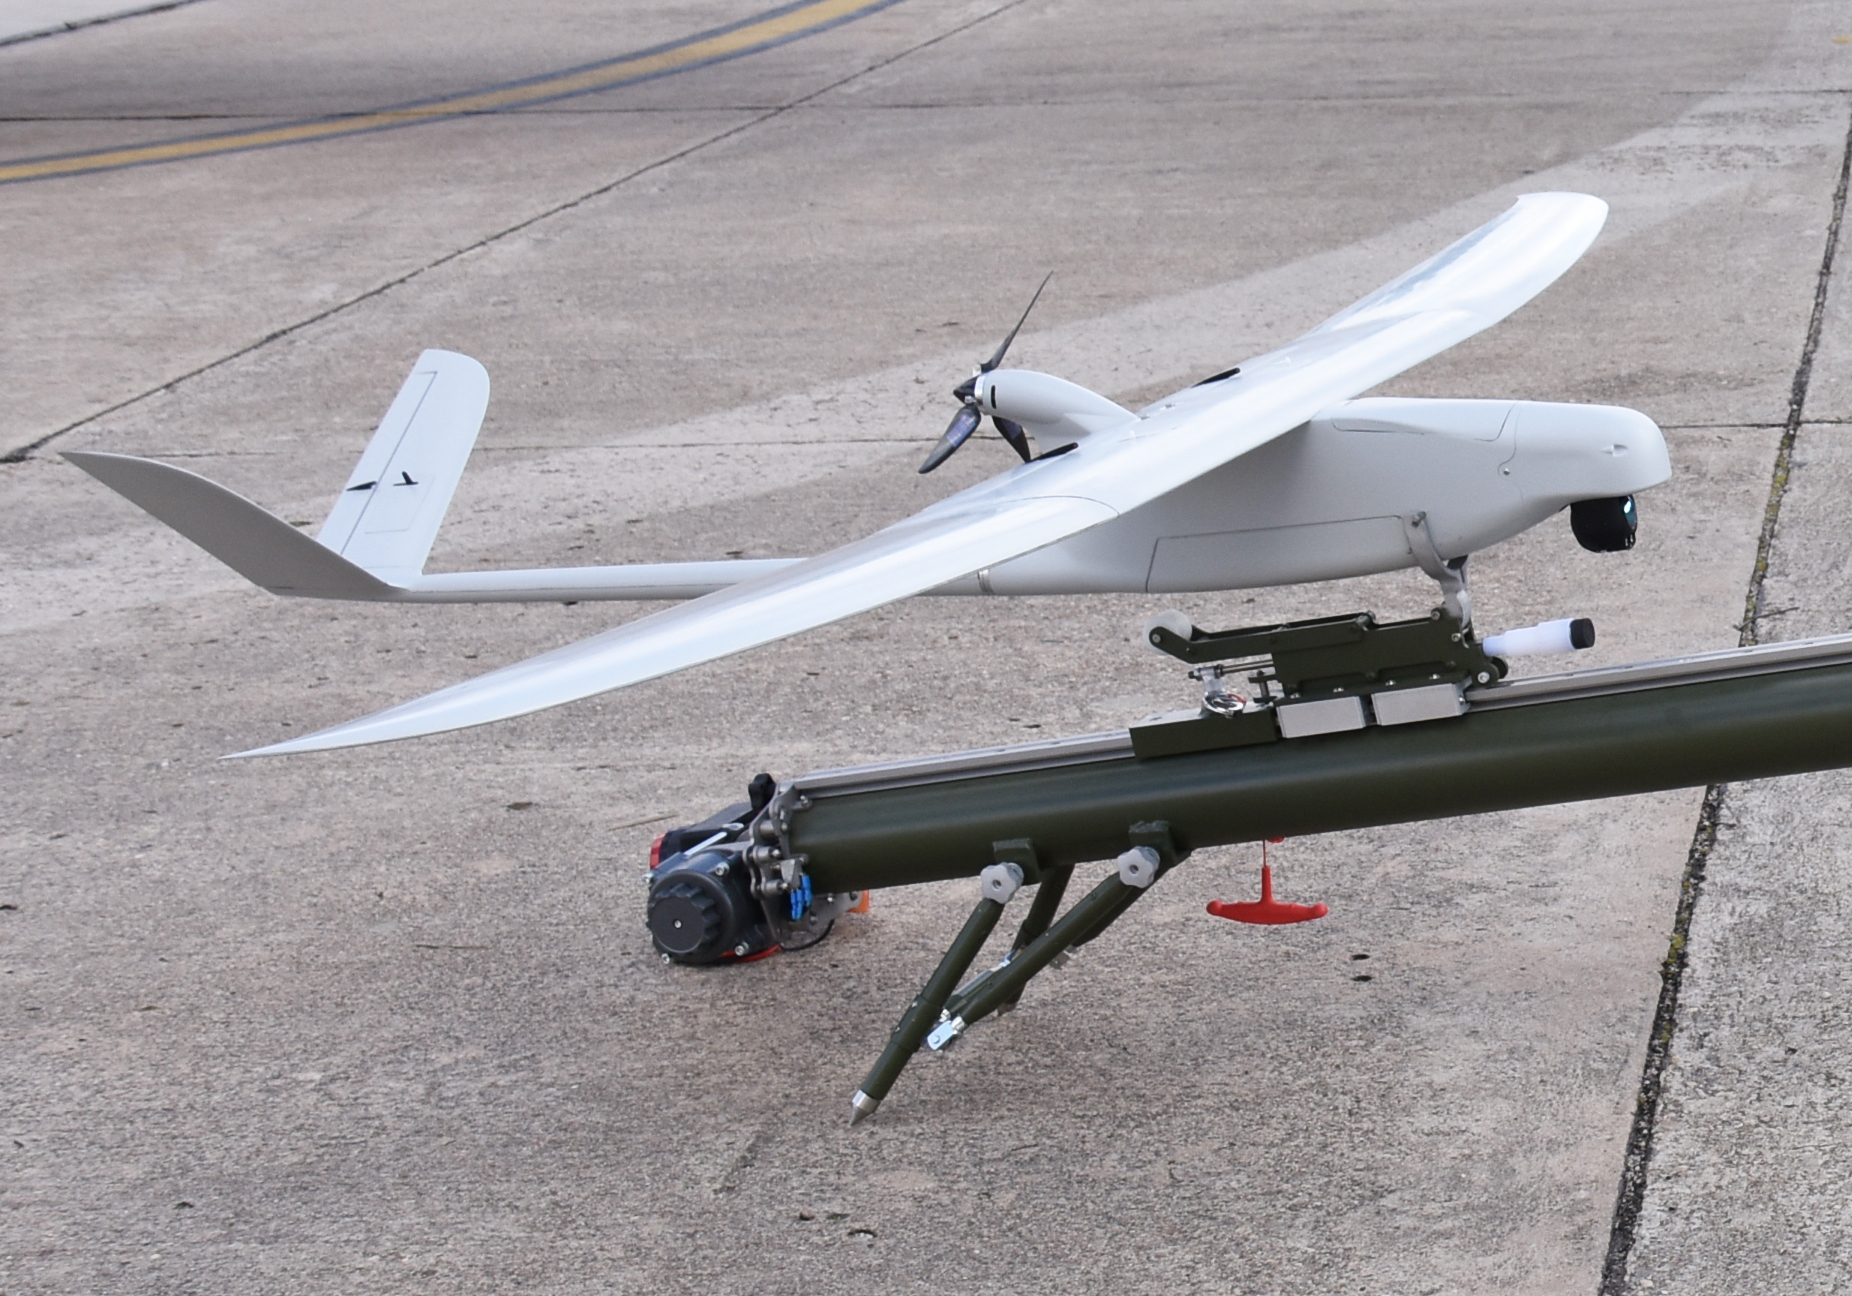 Schools of Matacán's group receives two SCR's new UAV Tucan